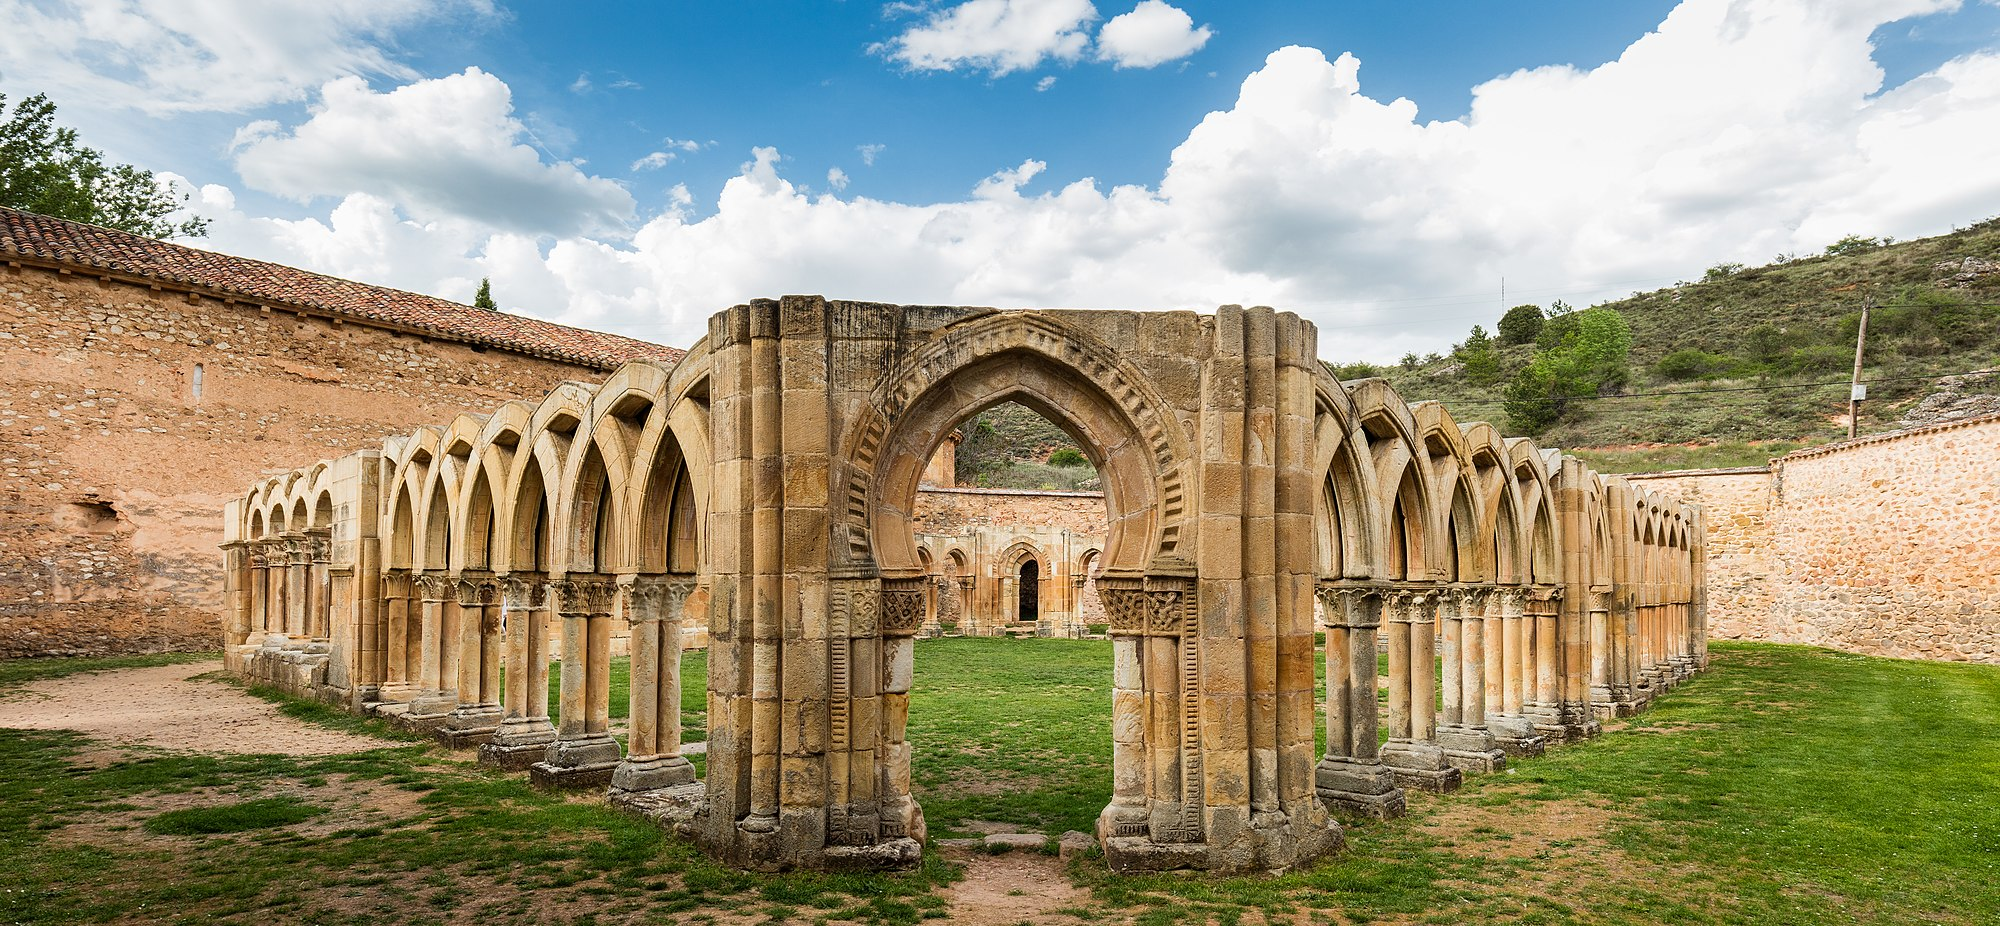 Remains of the Romanesque Monastery of San Juan de Duero, Soria, Spain. The temple, that belonged to the Knights Hospitaller, was erected in the 12th century and inhabitated until the 18th century.